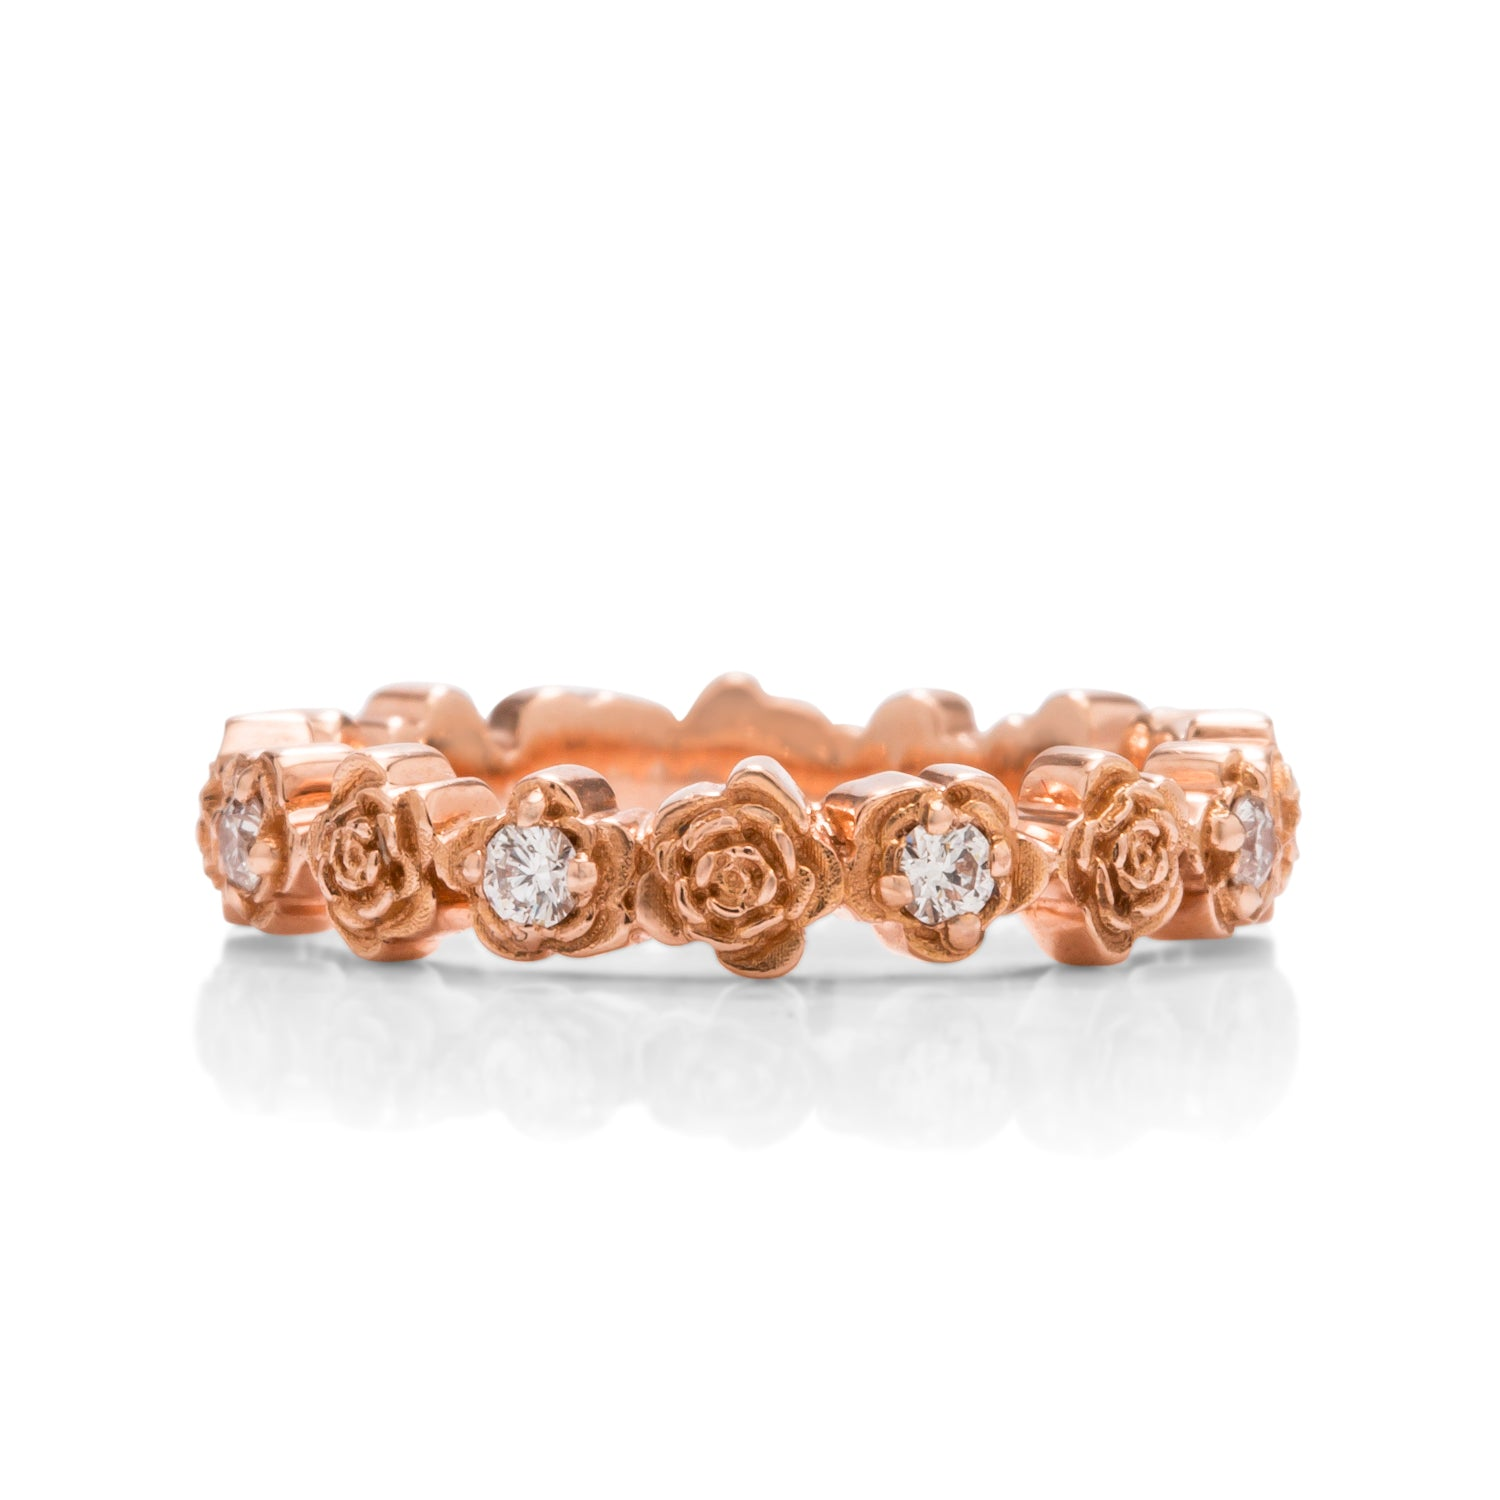 18k Rose Gold Ring - Charles Koll Jewellers